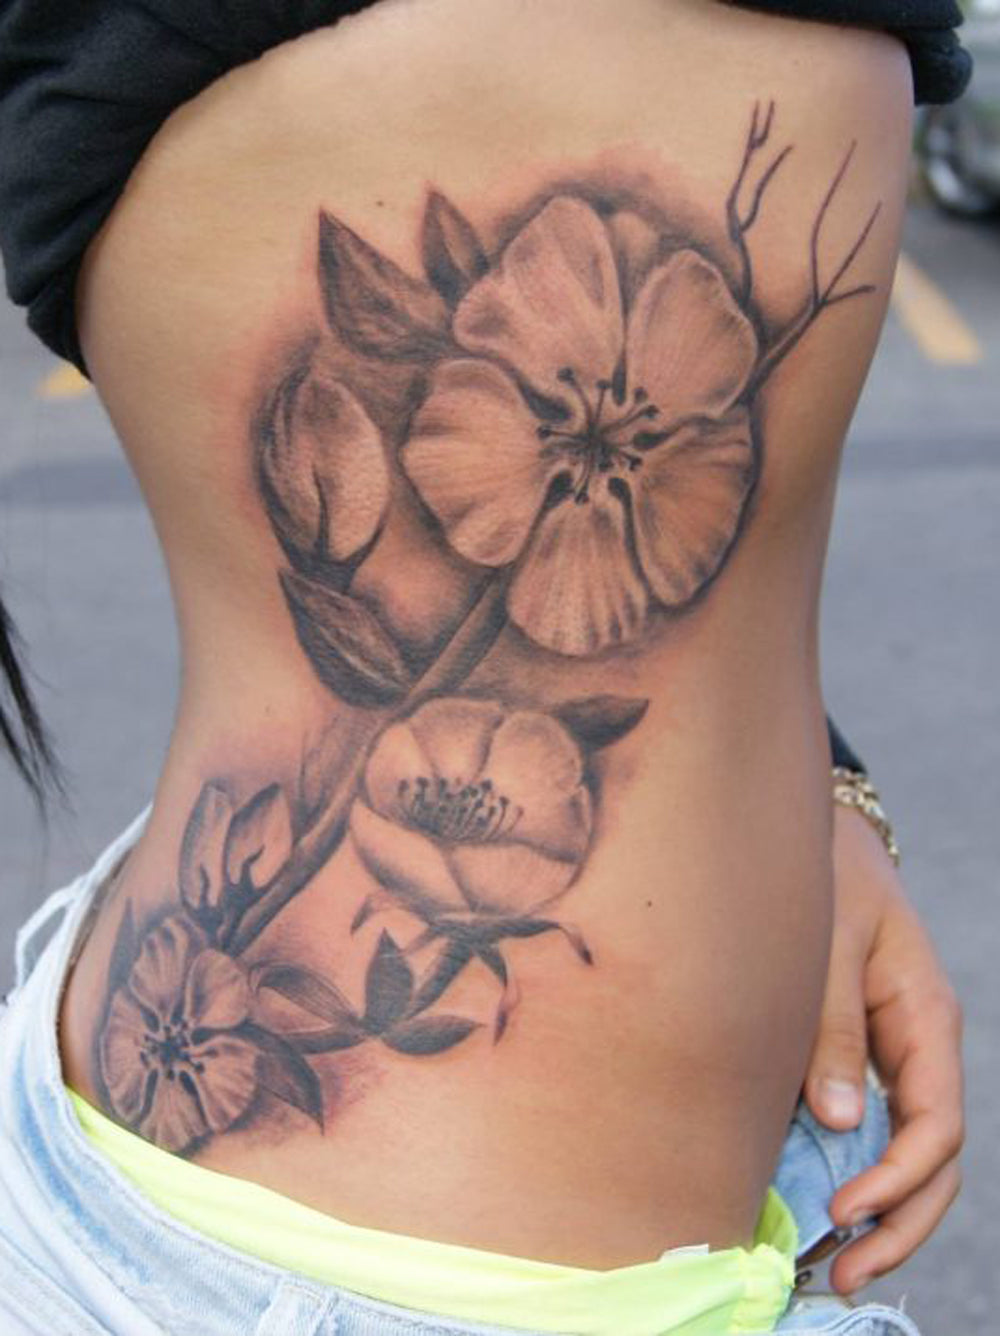 Realistic Hawaiian Flower Rib Womens Tattoo Ideas - Traditional Floral Flower Side Body Tatt -  Ideas realistas del tatuaje de la mujer de la costilla hawaiana de la flor - www.MyBodiArt.com